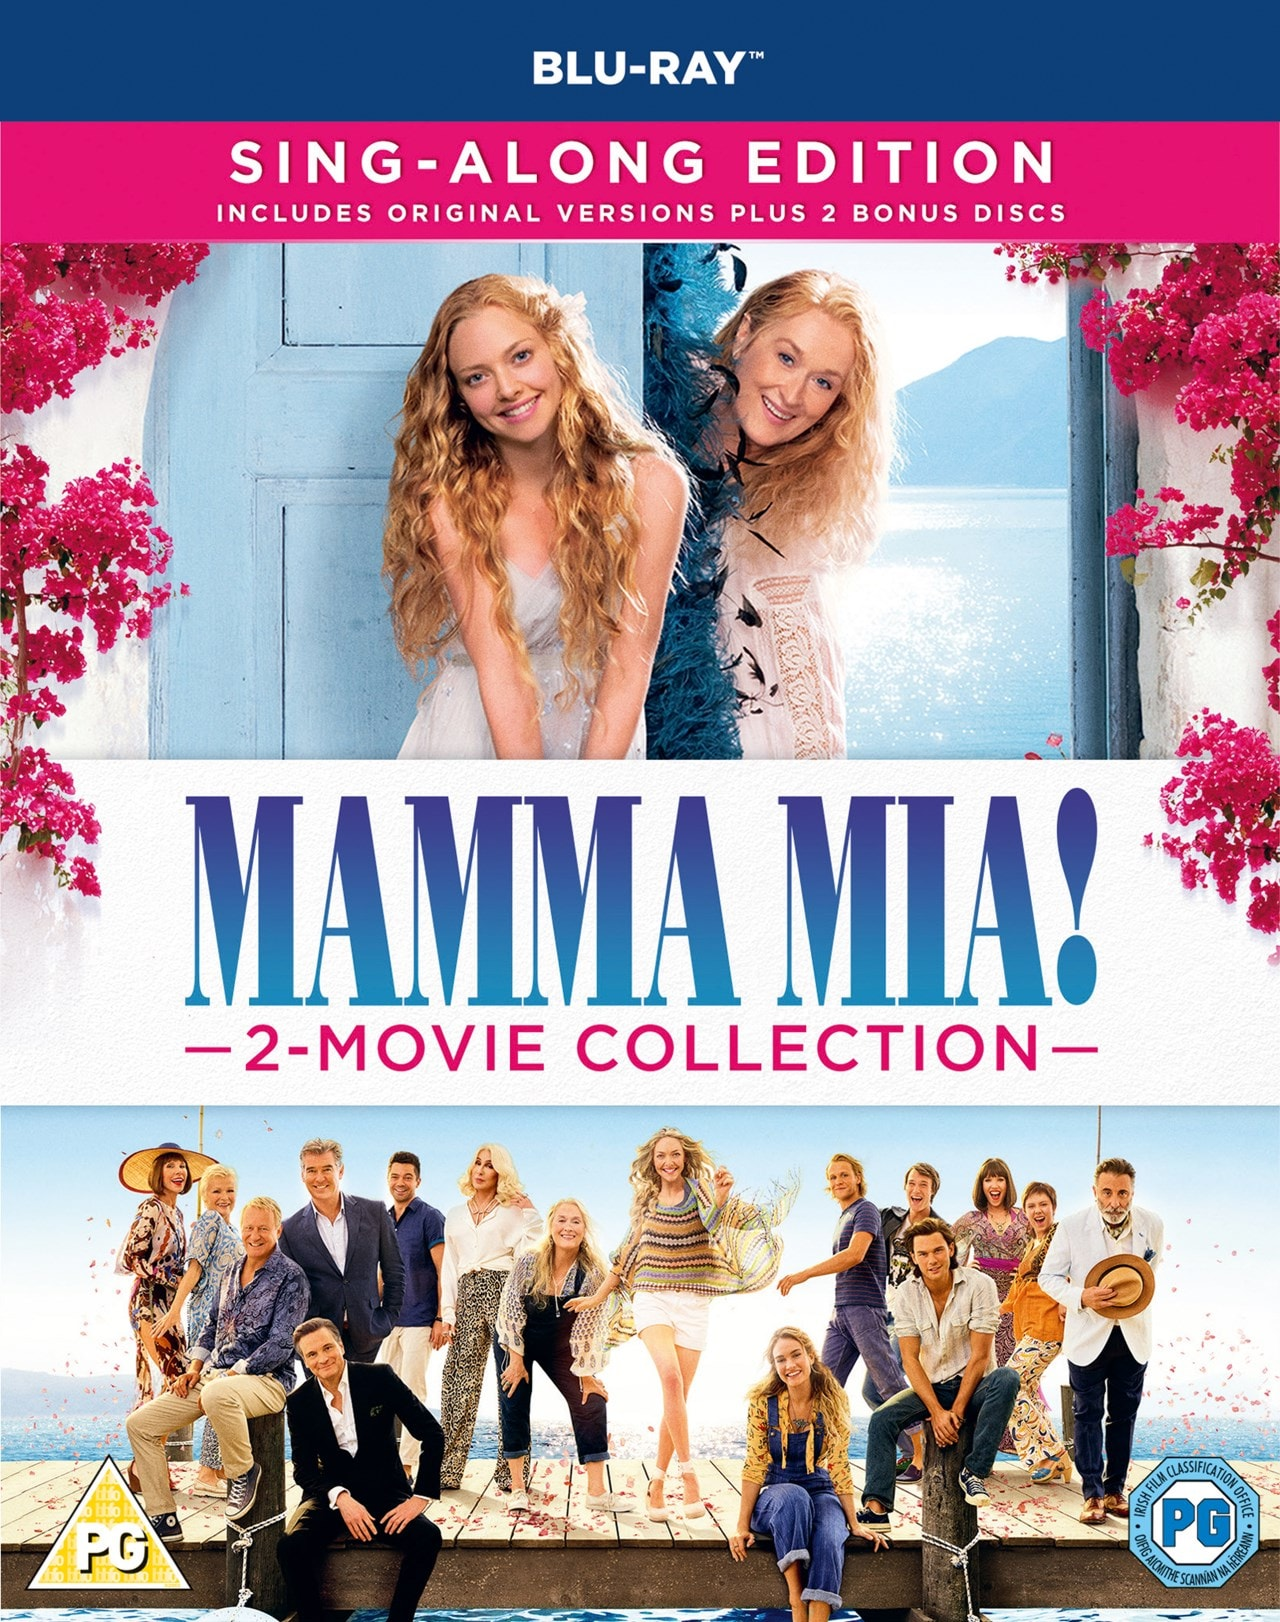 Mamma Mia!: 2-movie Collection - 1